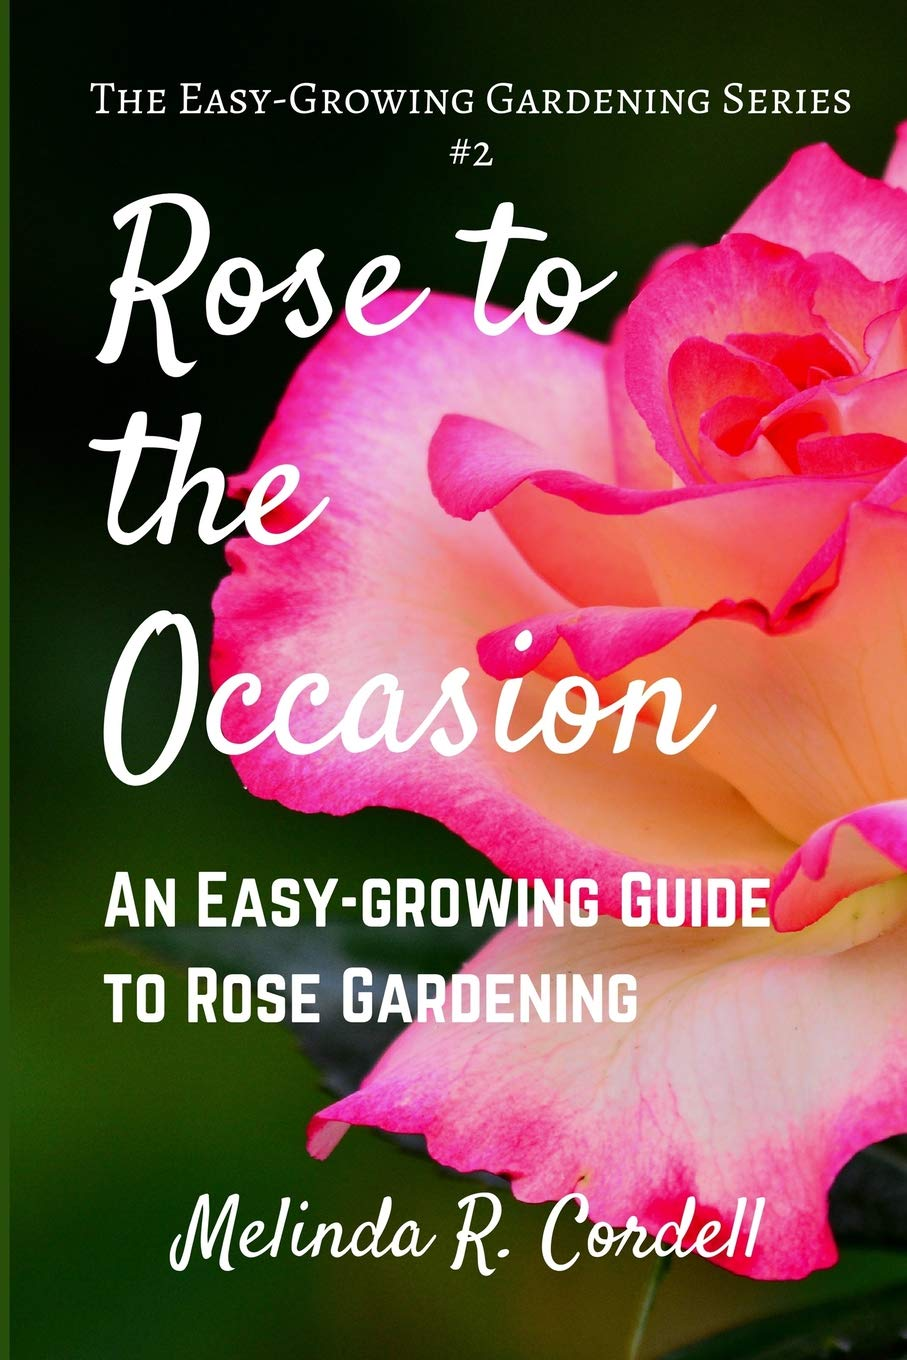 Rose Occasion Easy Growing Guide Gardening product image